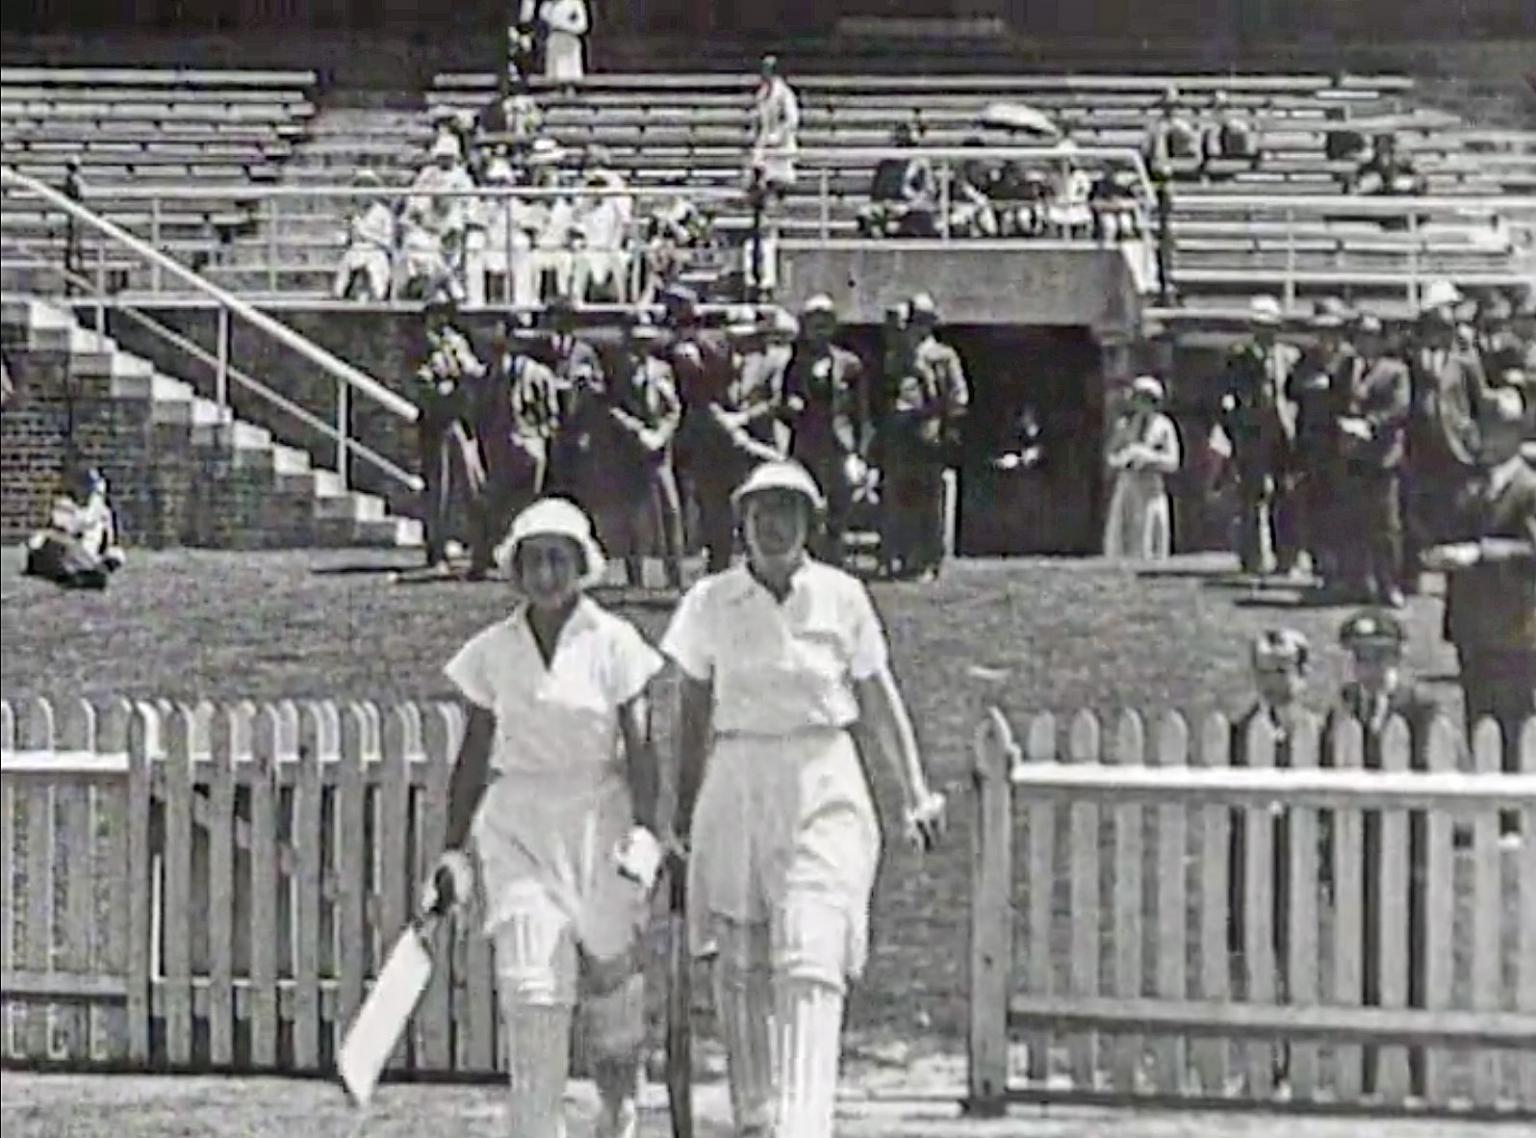 Two women cricketers walking onto a cricket pitch, they are wearing white uniforms and protective leg pads and holding cricket bats.